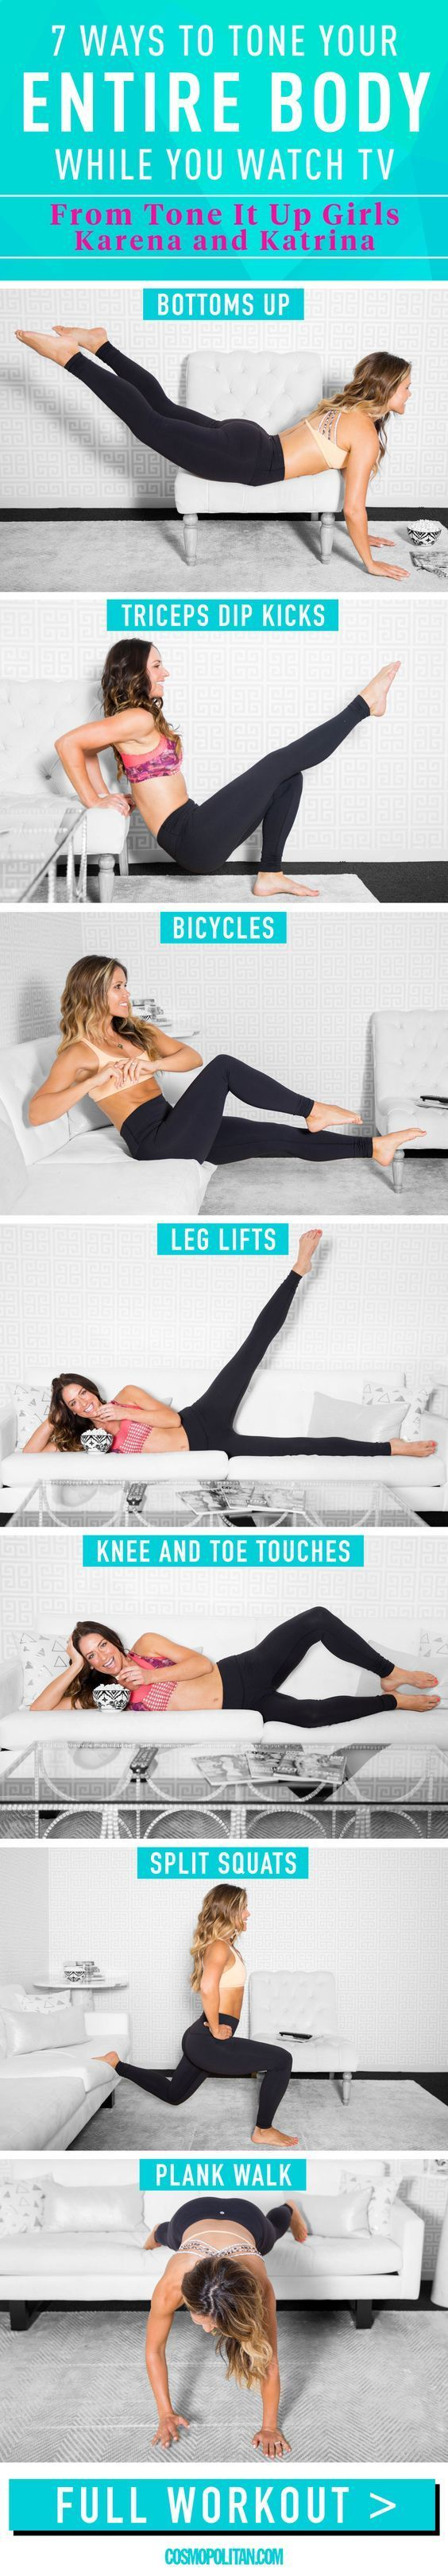 QUICK AT HOME WORKOUT: Try these living-room friendly exercises next time you binge watch your favorite show. This at home, inside workout is perfect for days with bad weather, if you're trying to save money and don't have a gym membership, or you're just trying to squeeze in a quick and simple workout at home. Do 10 to 15 reps of each move on each side, then repeat the entire sequence at least twice. This free workout routine will tone your abs, arms, butt, and legs. Click through for the…